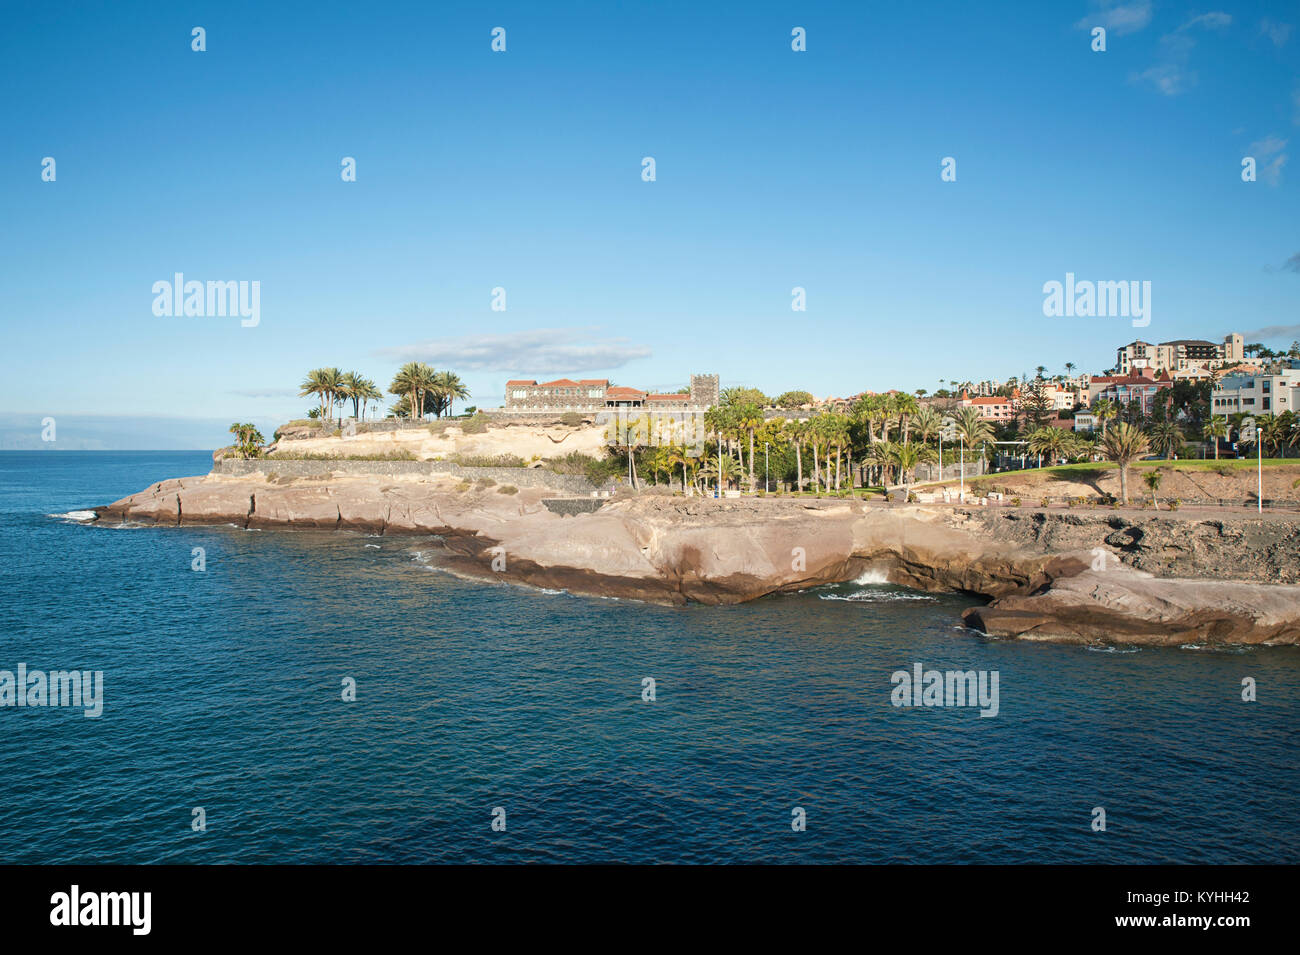 Fresh and clear sky, early morning, with views towards Casa del Duque and the popular resort of Costa Adeje, Tenerife, - Stock Image